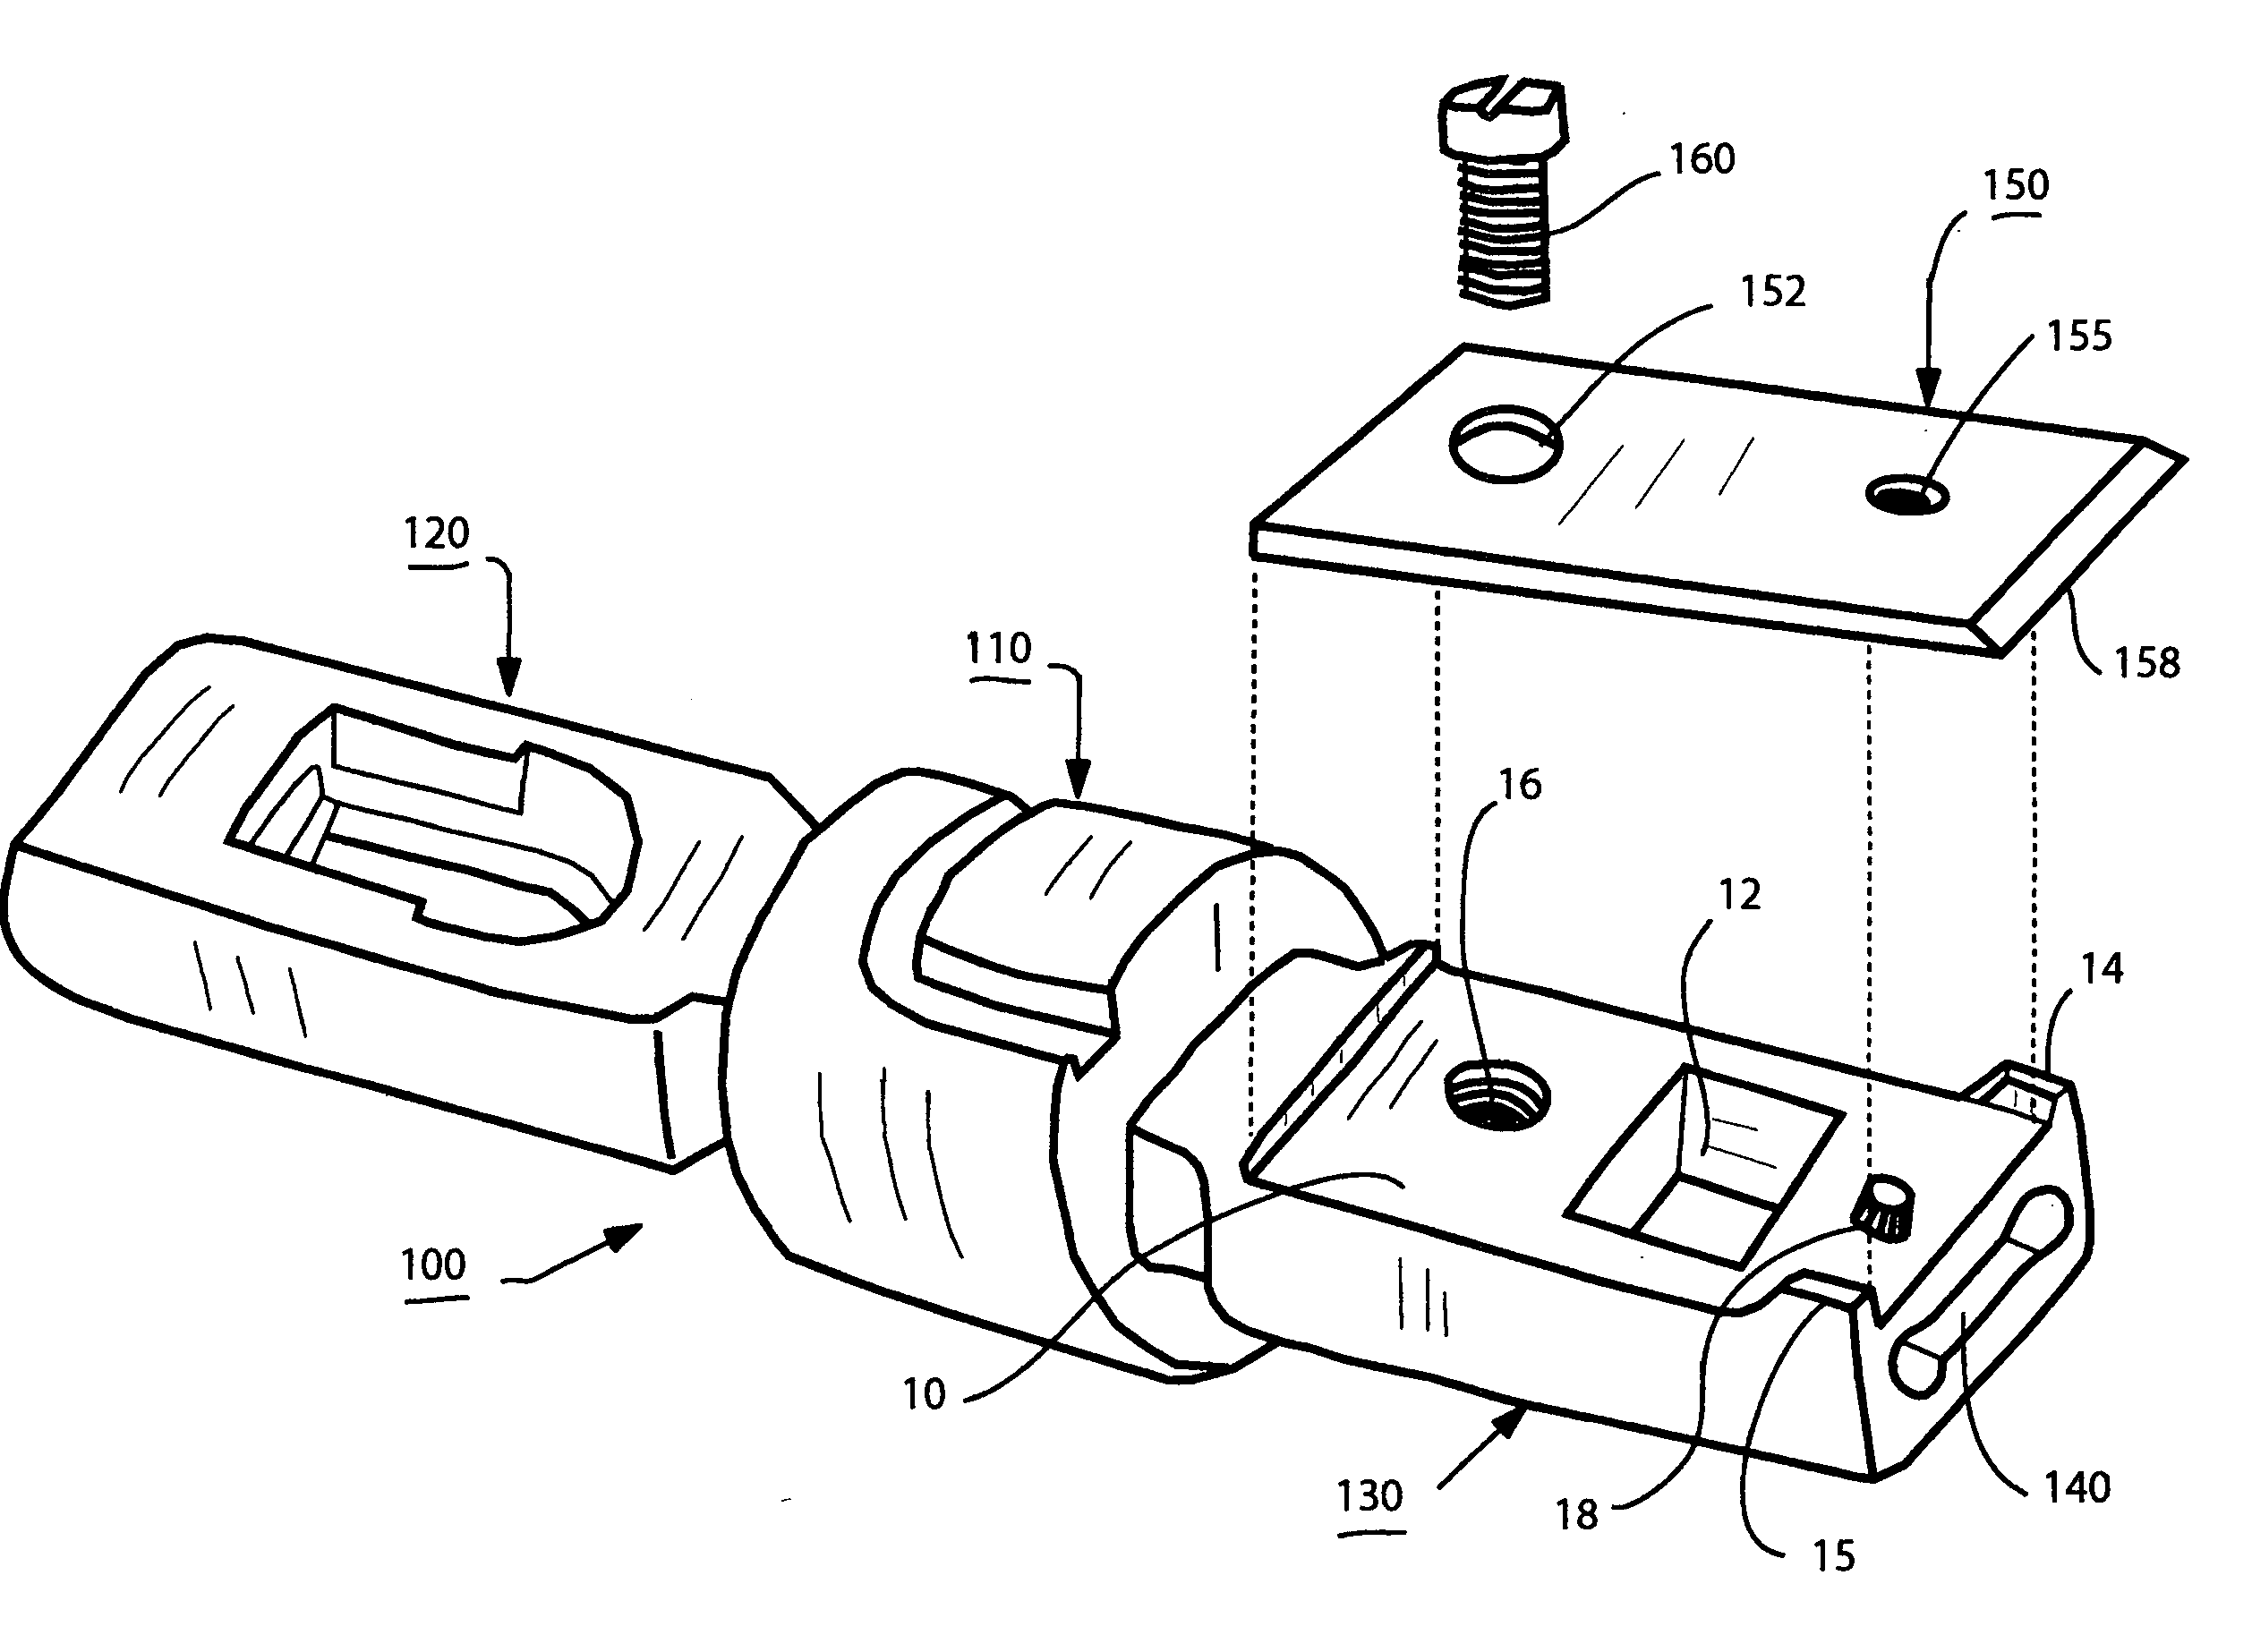 patent us20060242840 wire end insert 66 tool with replaceable 110 Punch Down Wiring Guide patent drawing